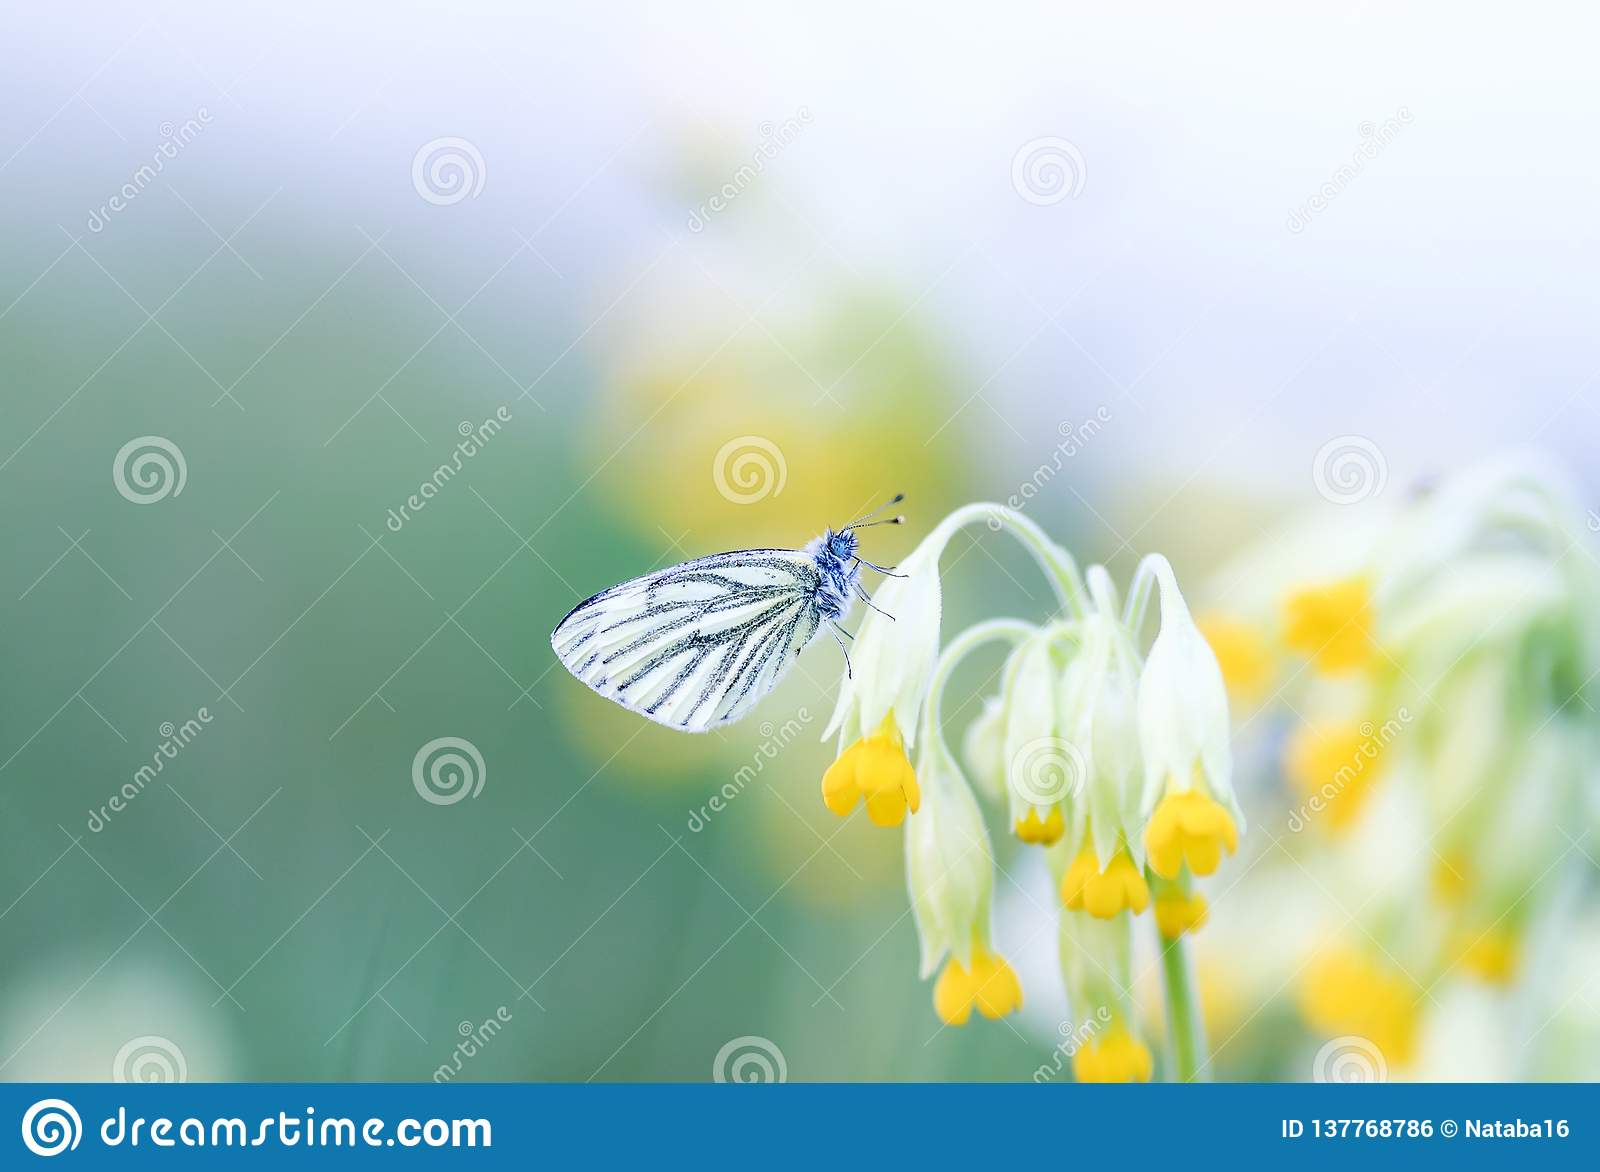 butterfly sitting on a spring green meadow in the yellow flowers of the primrose